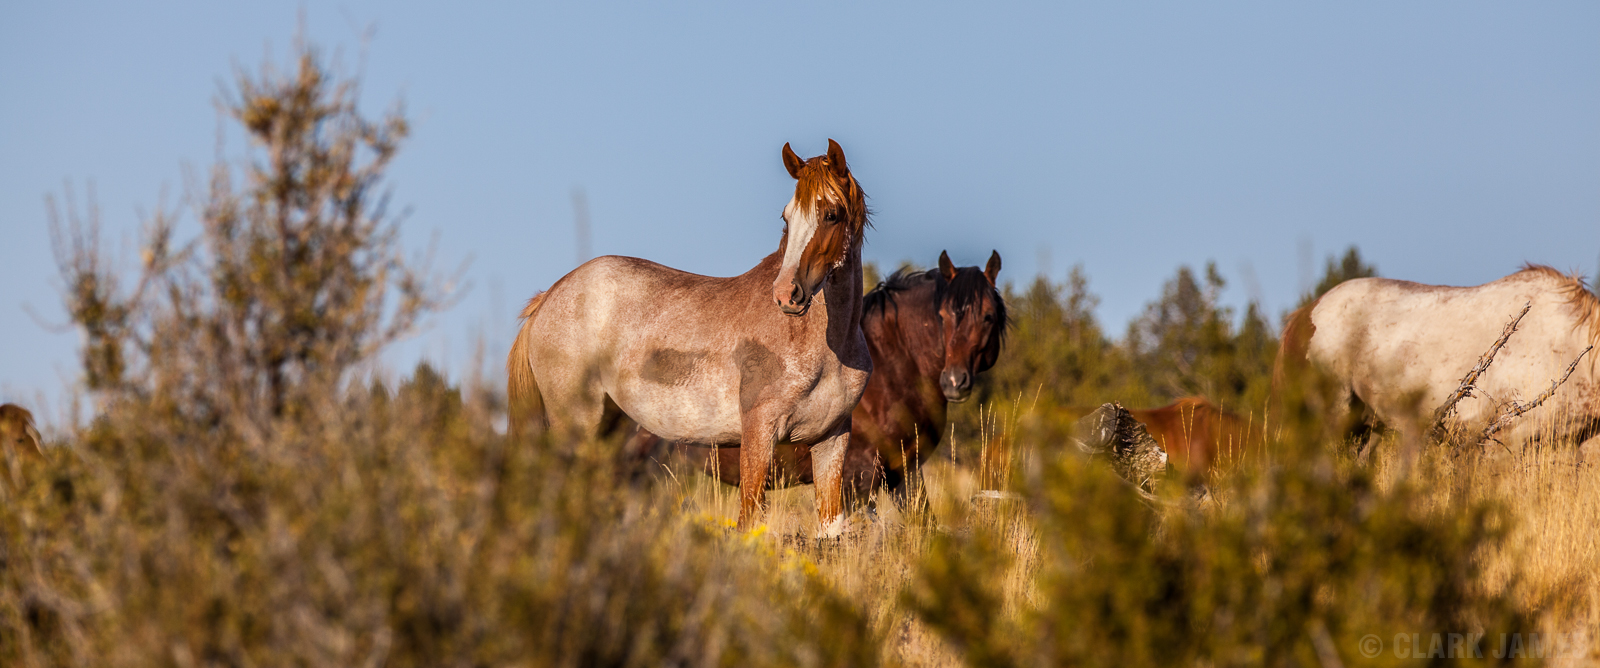 WILD HORSES OF EASTERN OREGON